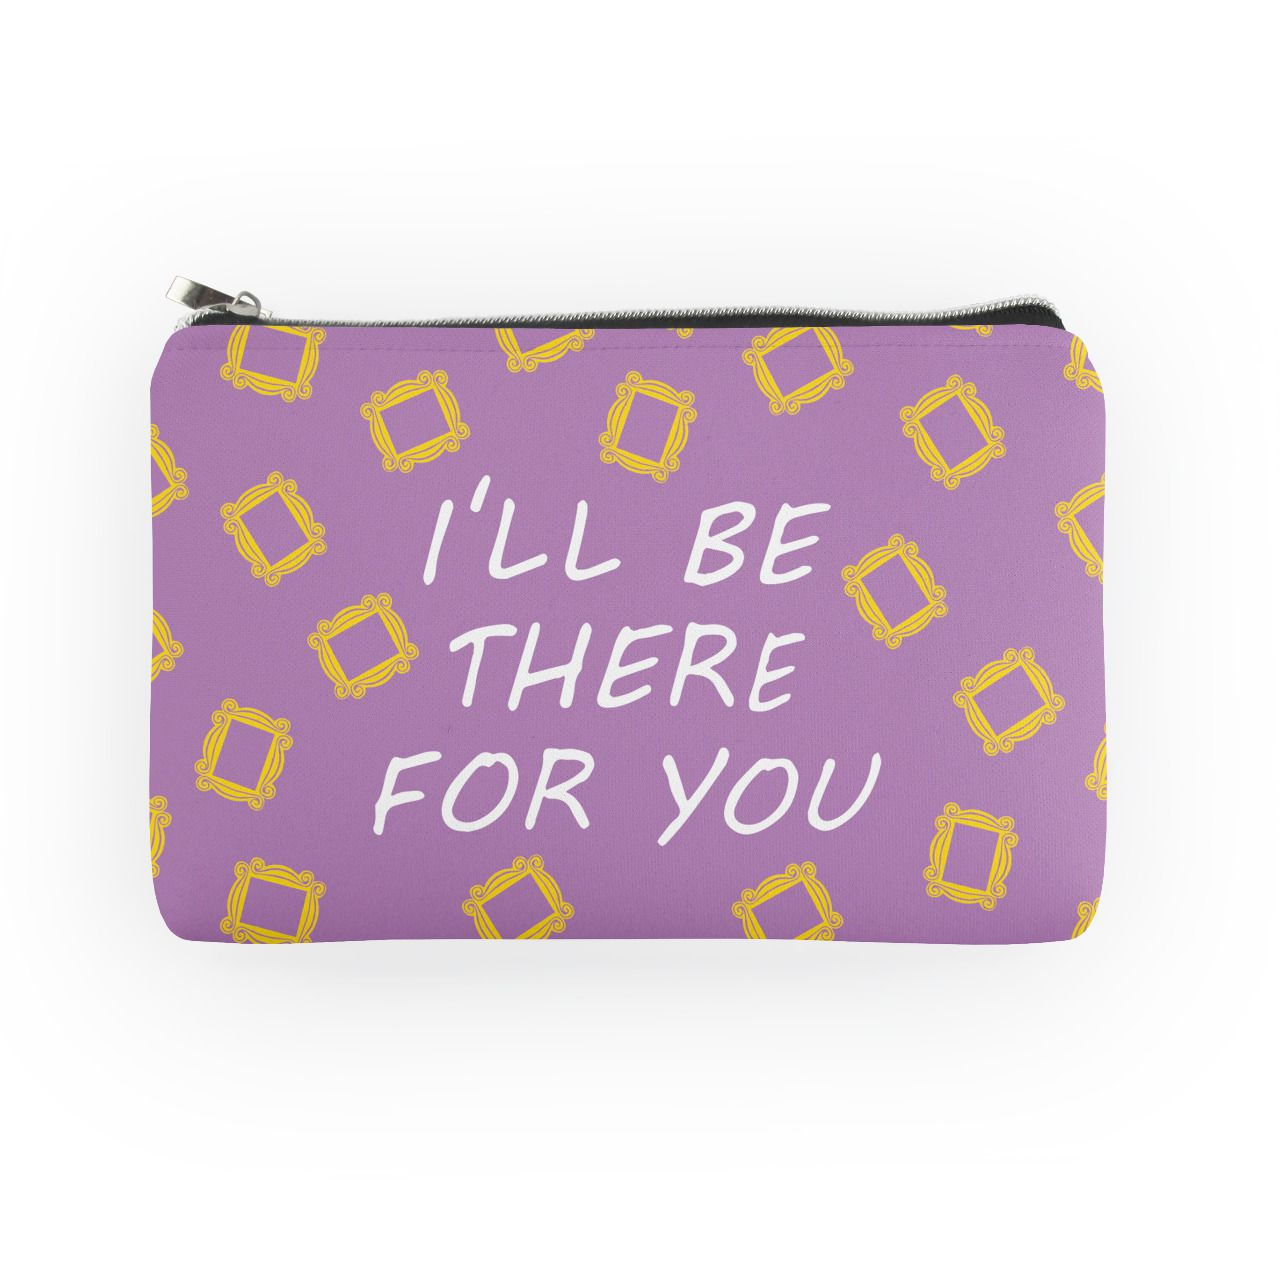 Porta Moedas Necessaire I'll Be There For You